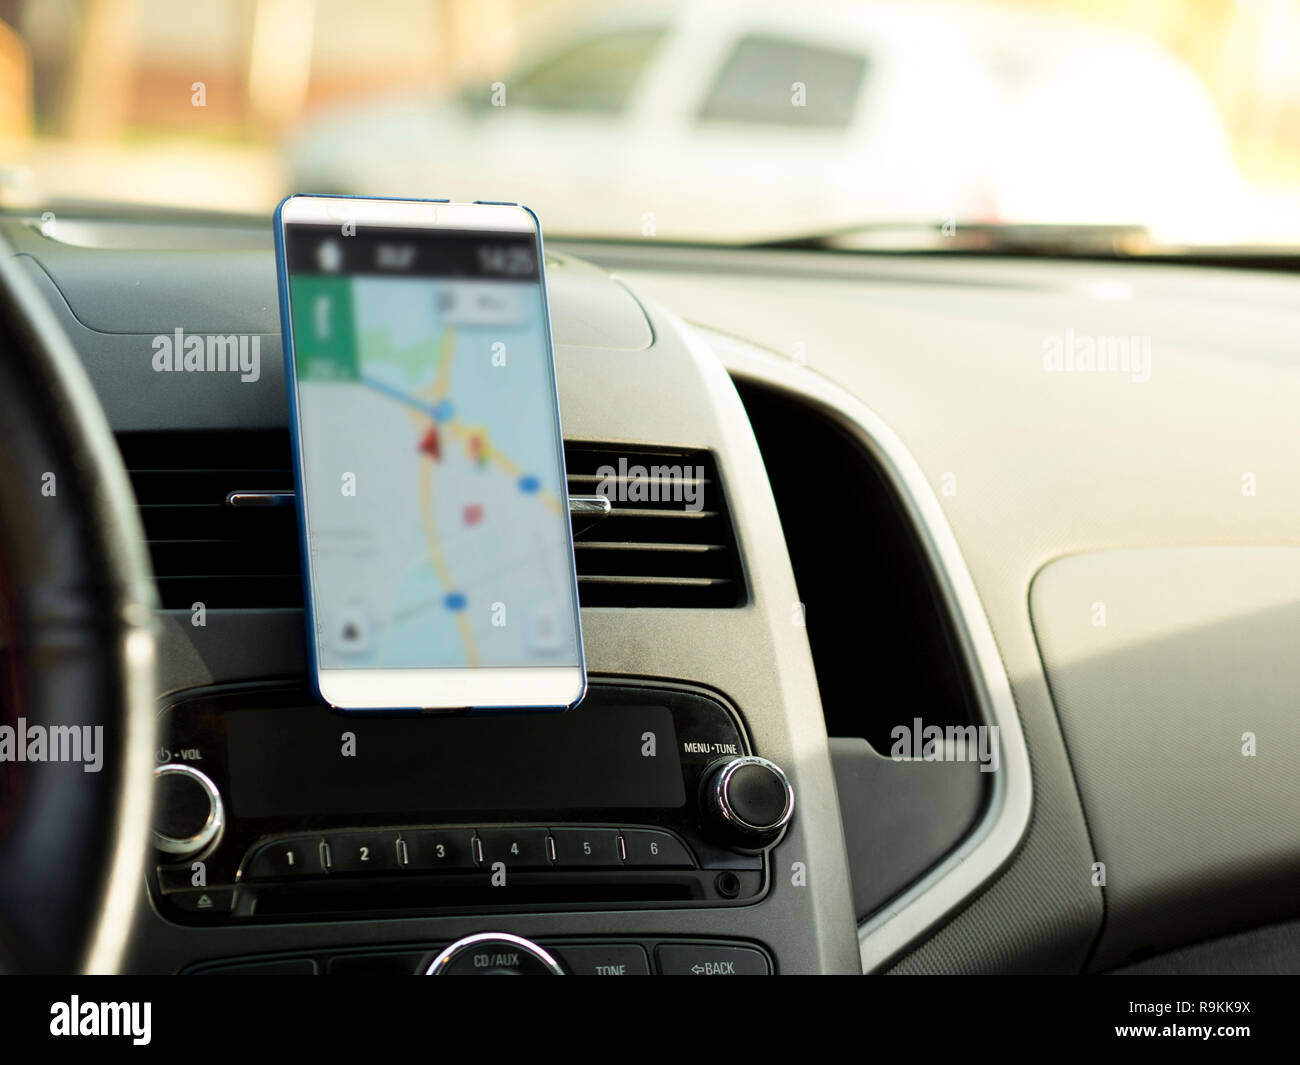 mobile phone located in the center of the vehicle console. Blank screen phone in the car - Stock Image